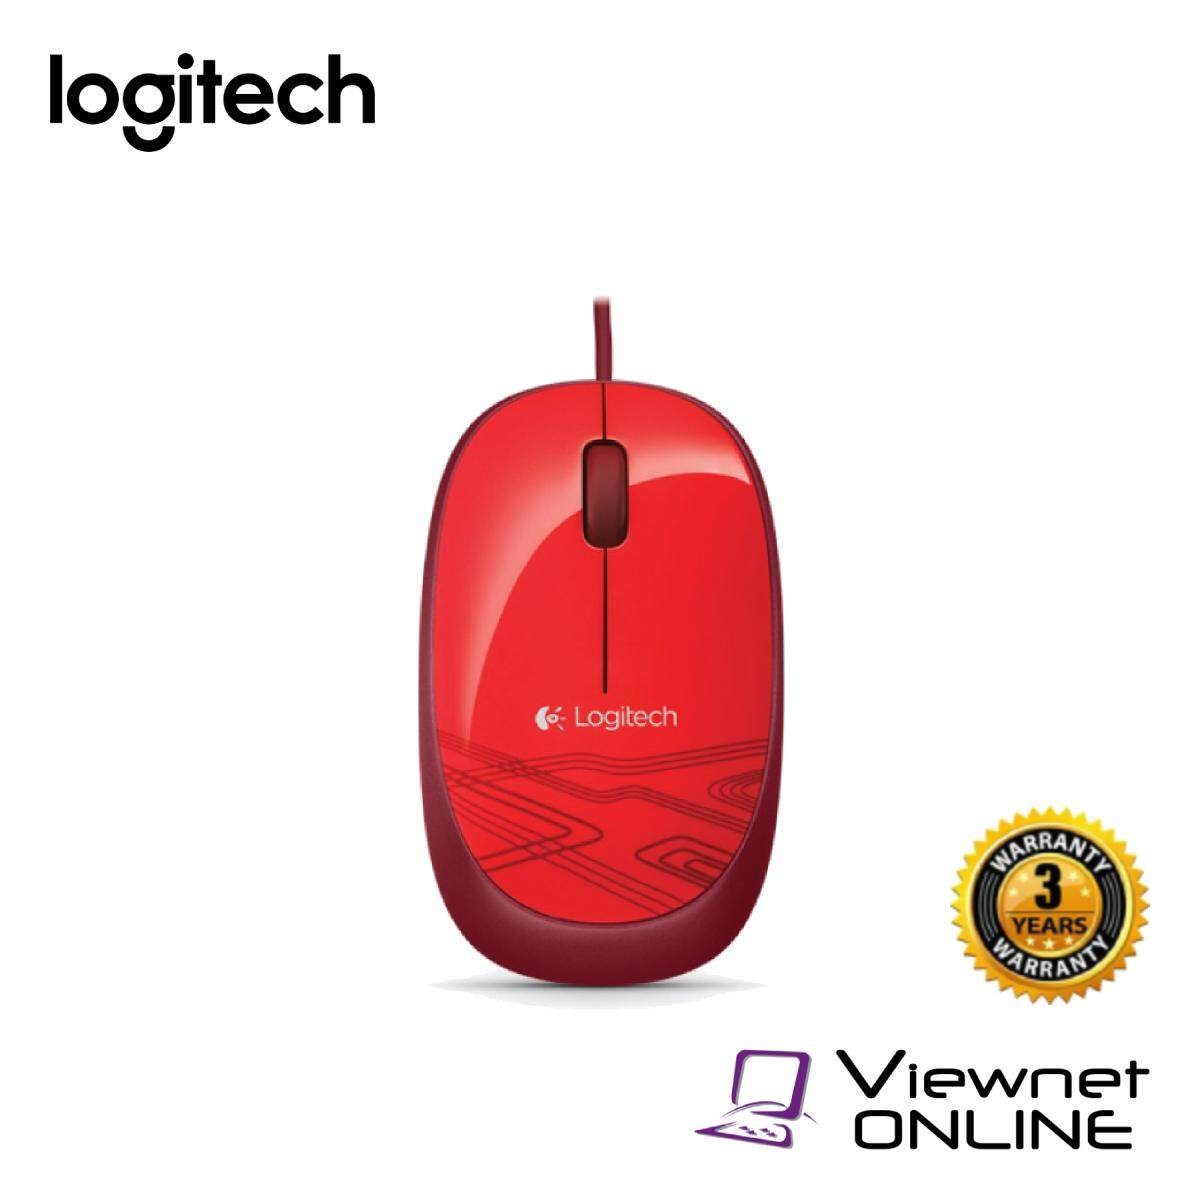 Logitech M105 Corded Mouse - Red